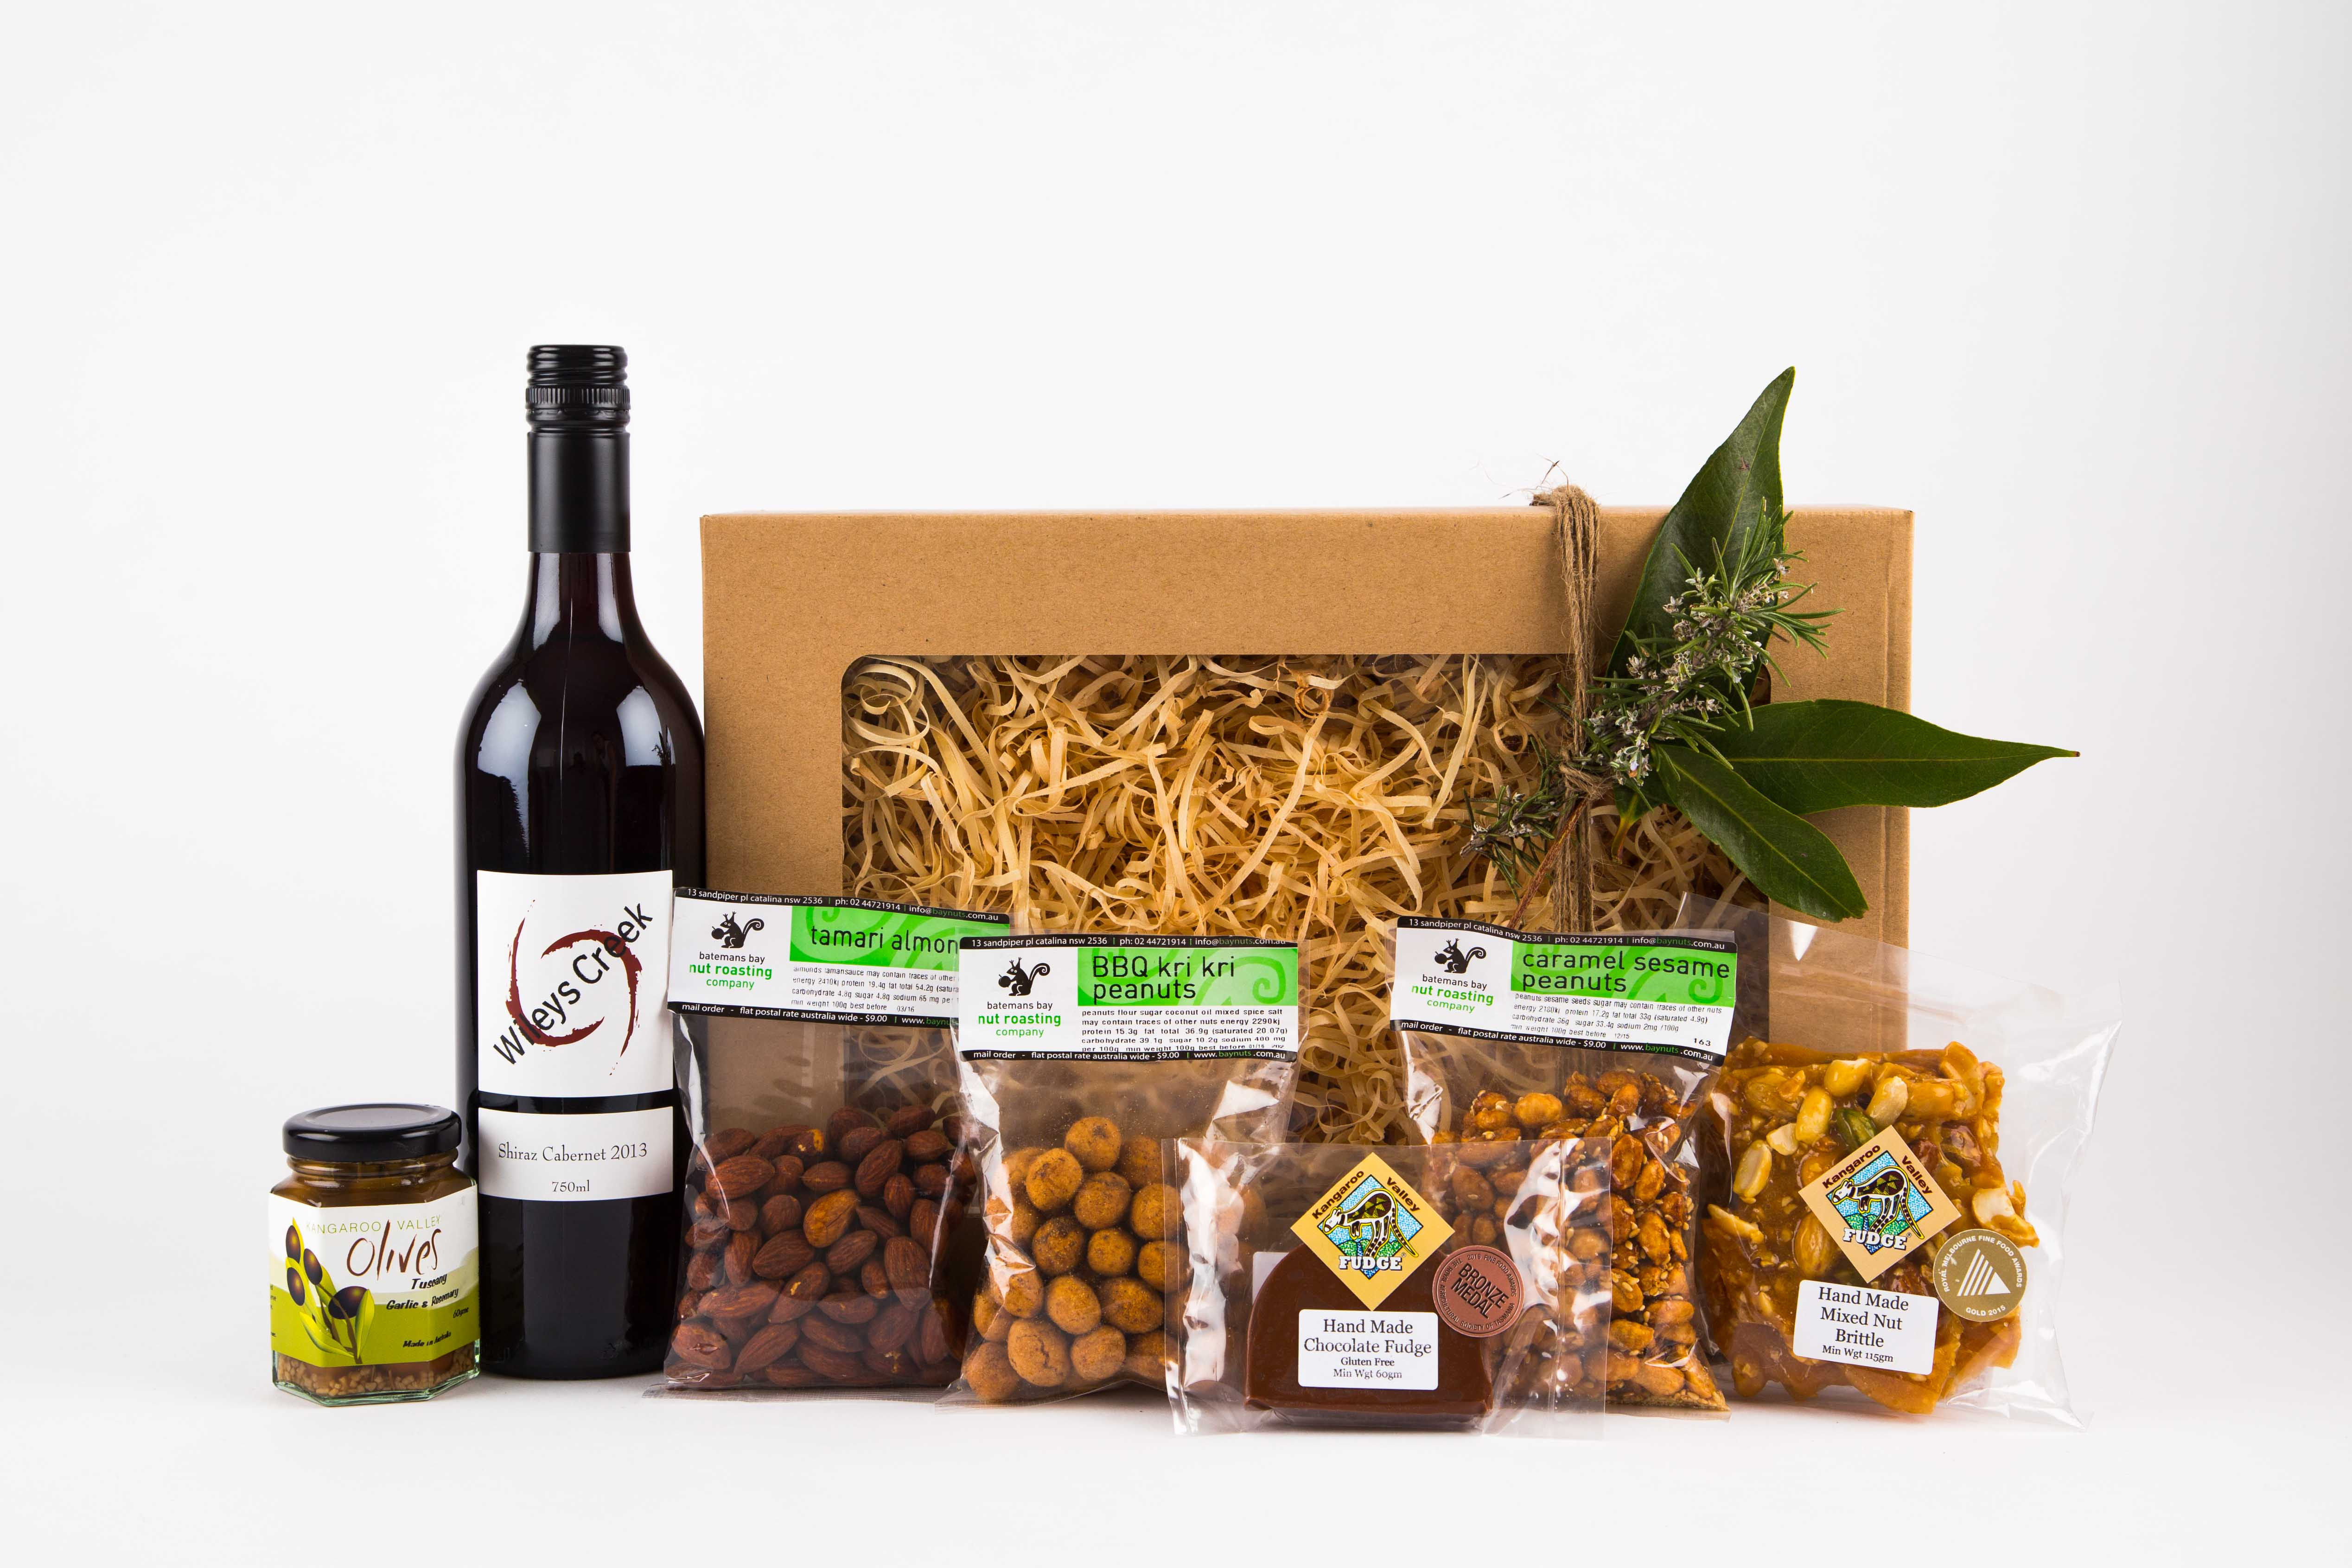 Luxury gift hampers sourced from the south coast of new south luxury gift hampers sourced from the south coast of new south wales red wine hamper negle Image collections